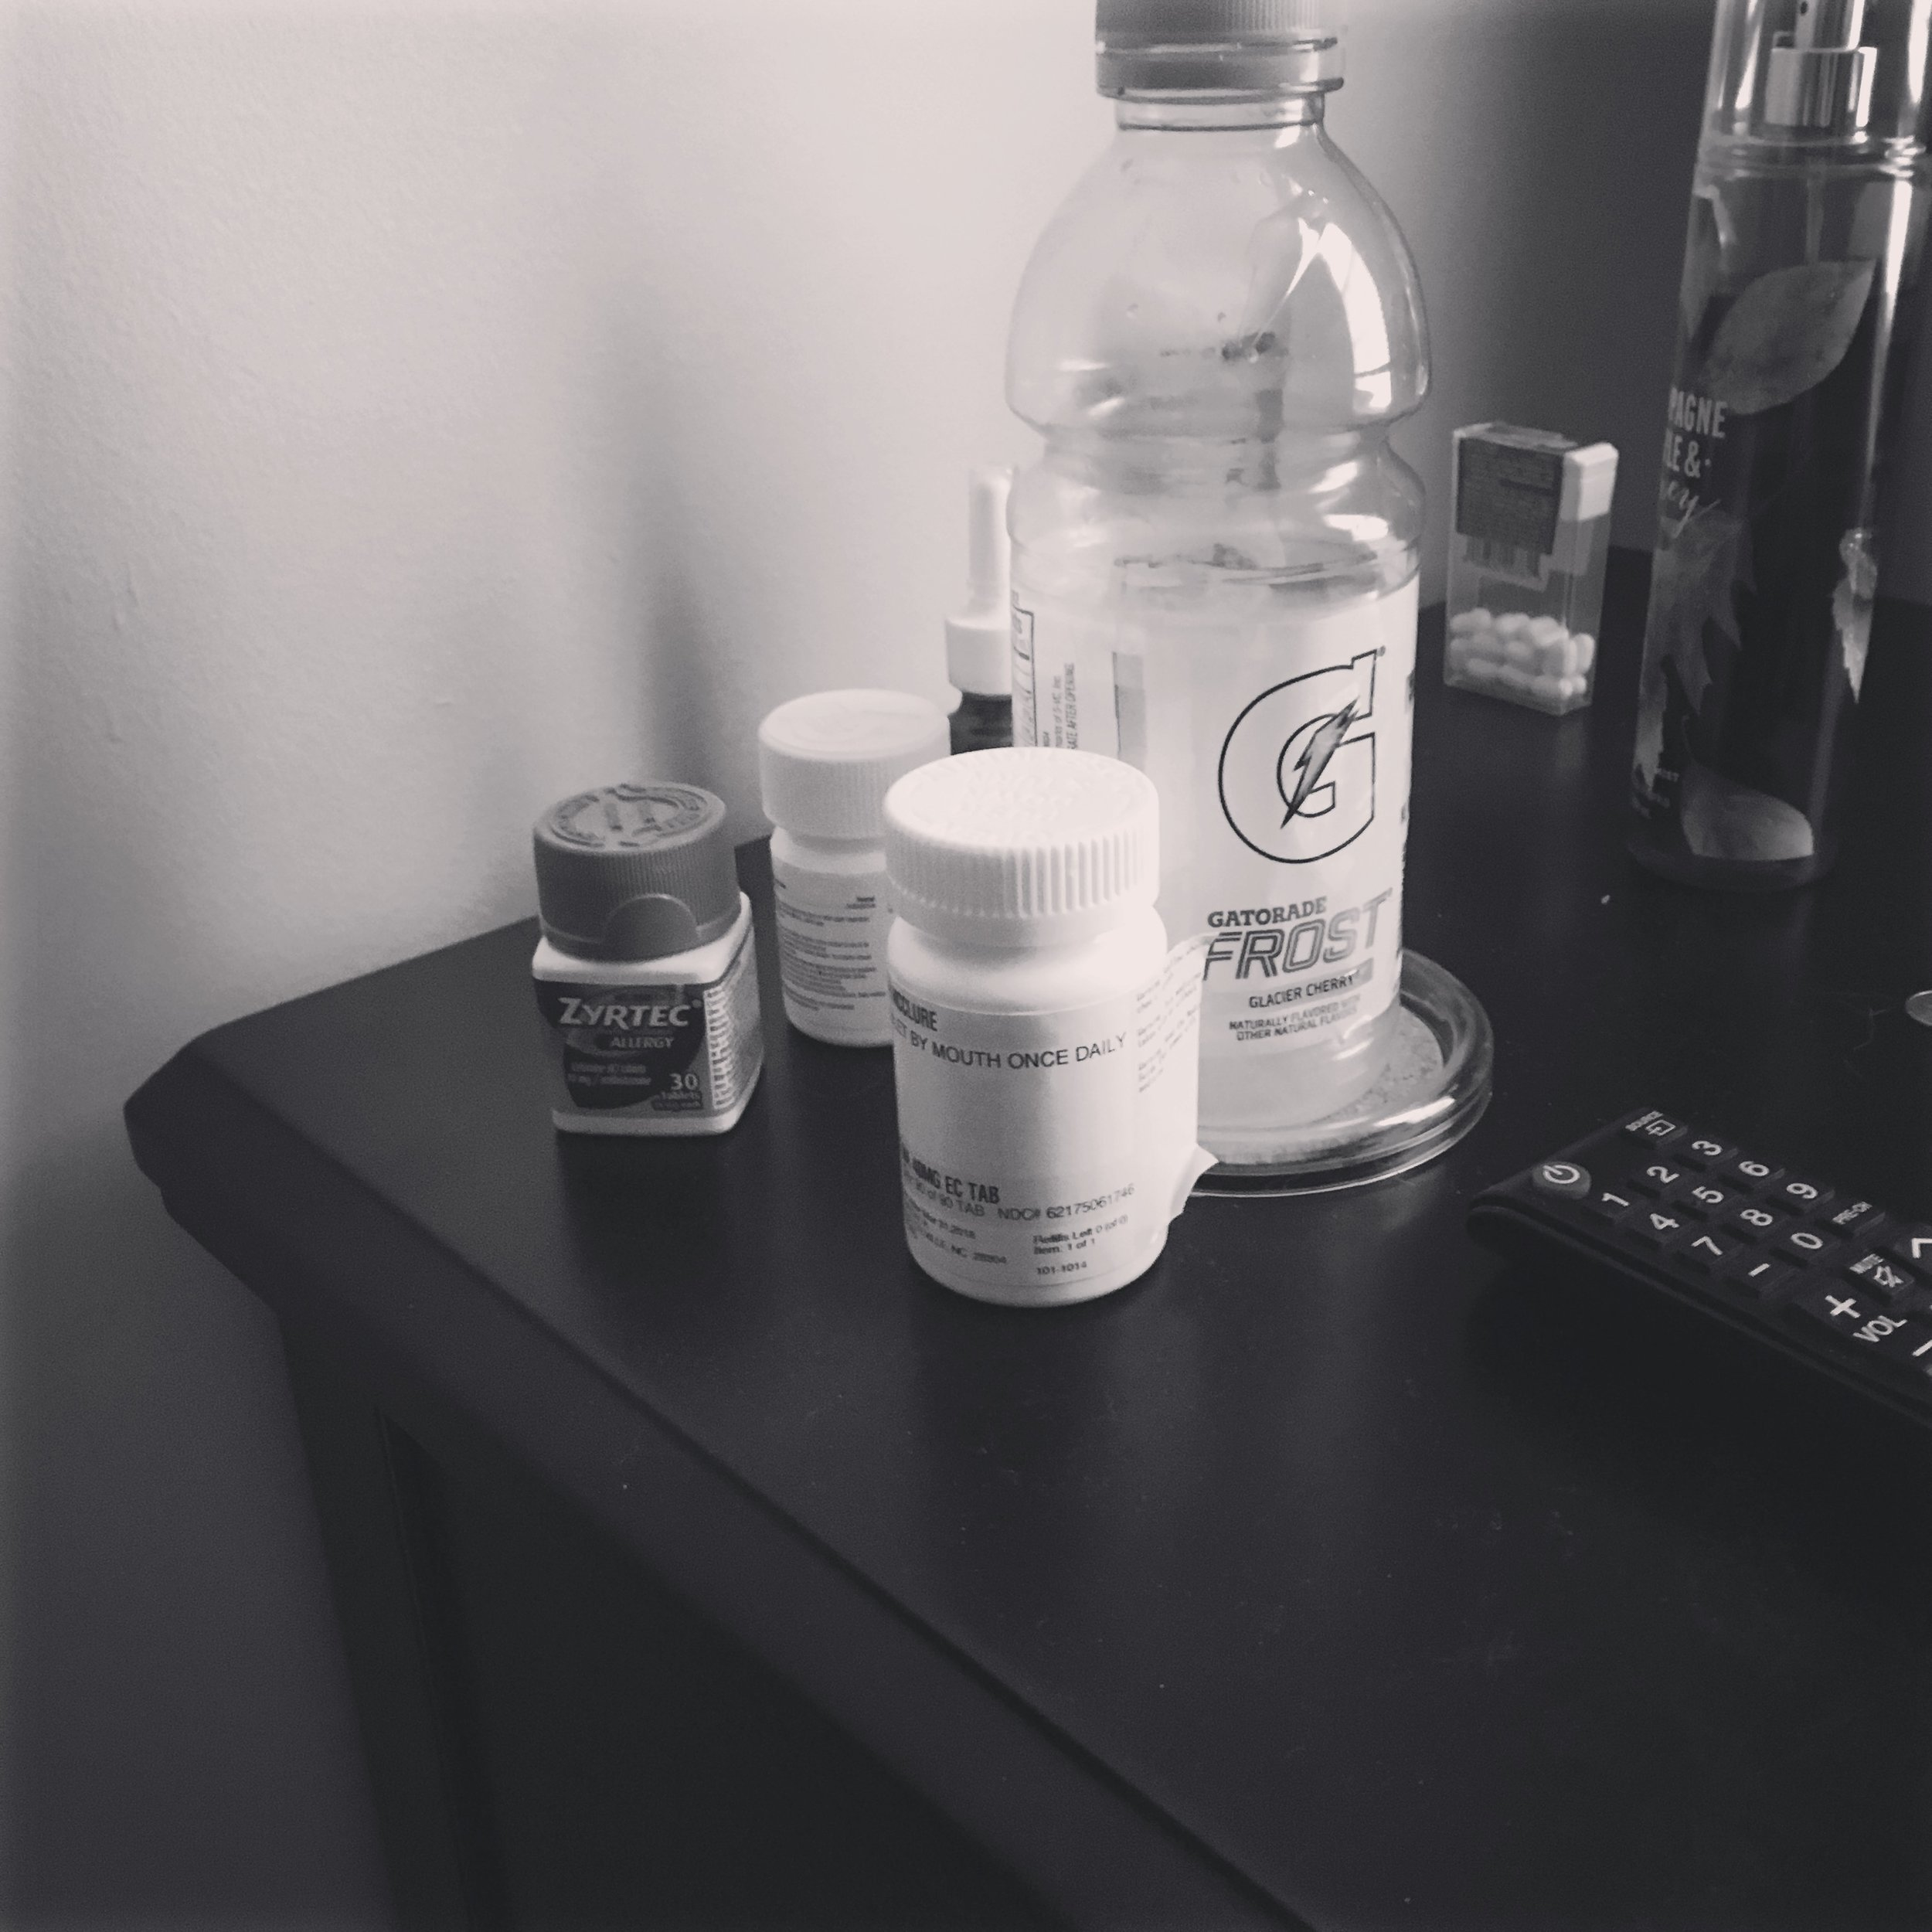 0750 || The first thing I usually do when I wake up is to reach for my medication. I don't take nearly half the things I should because I just don't like taking medicine. After hardly getting any sleep last night, today is going to be a long day for sure.